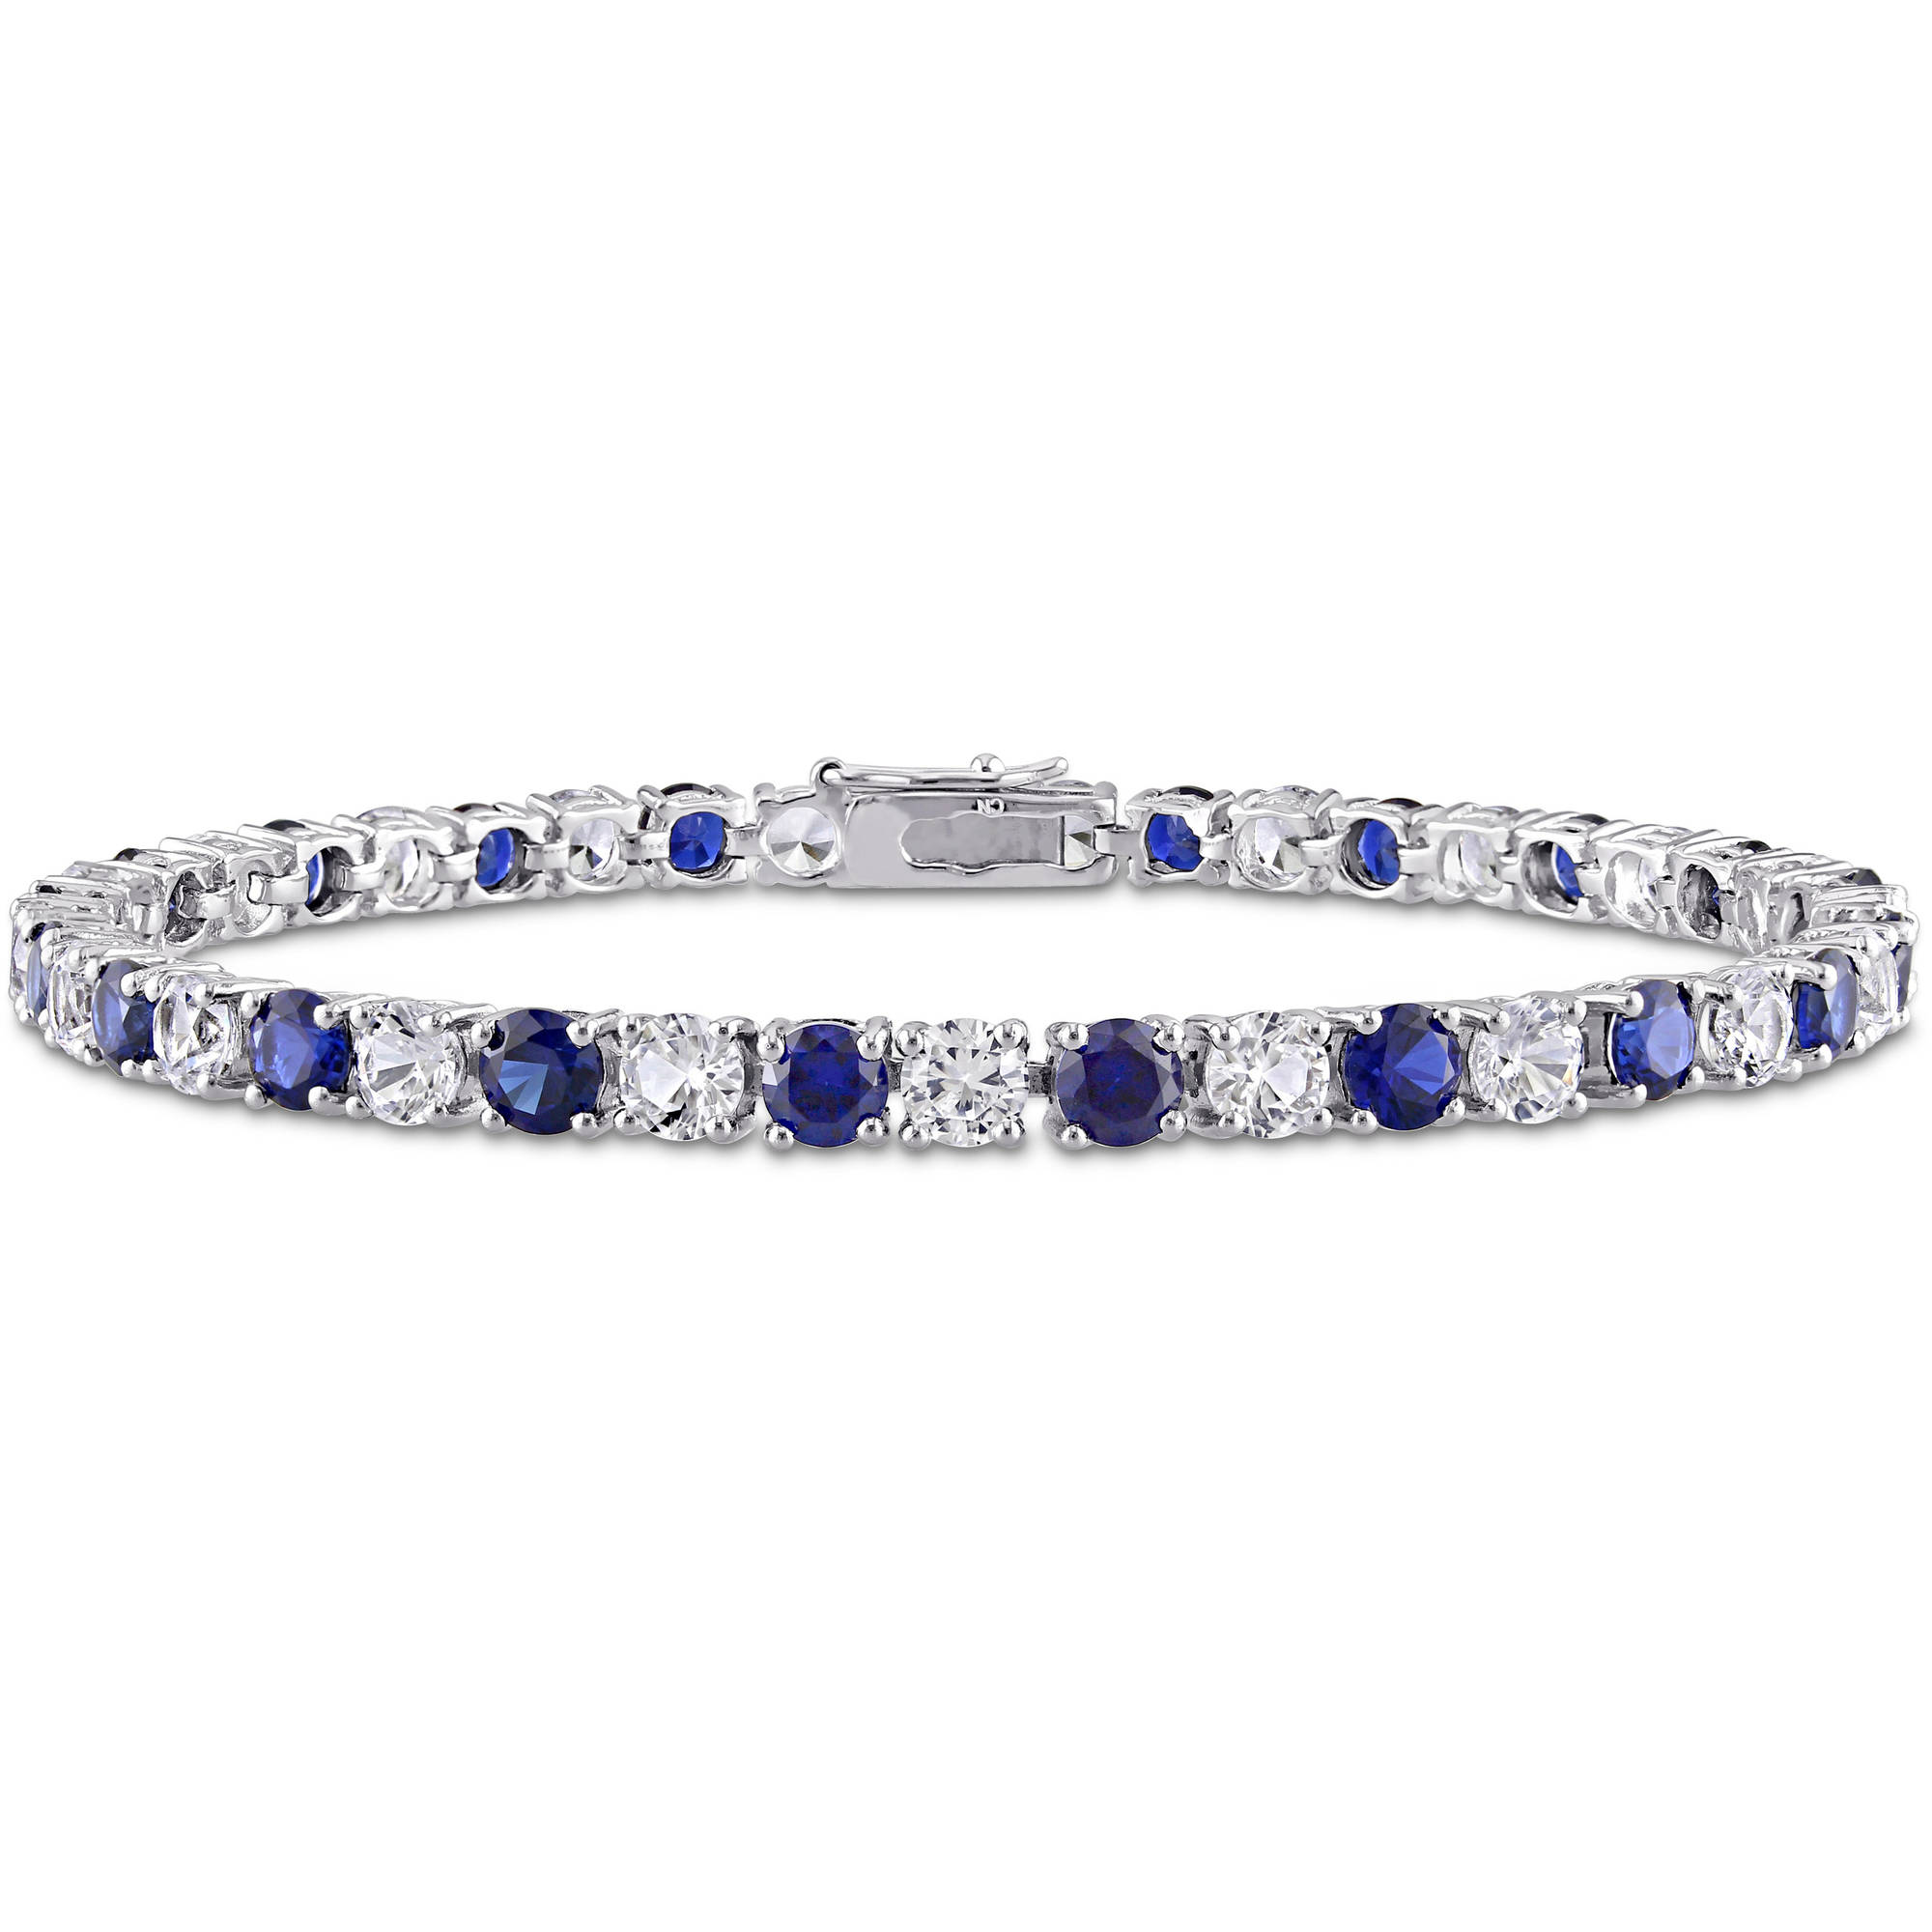 Tangelo 14-1/4 Carat T.G.W. Created Blue and White Sapphire Sterling Silver Tennis Bracelet, 7-1/4